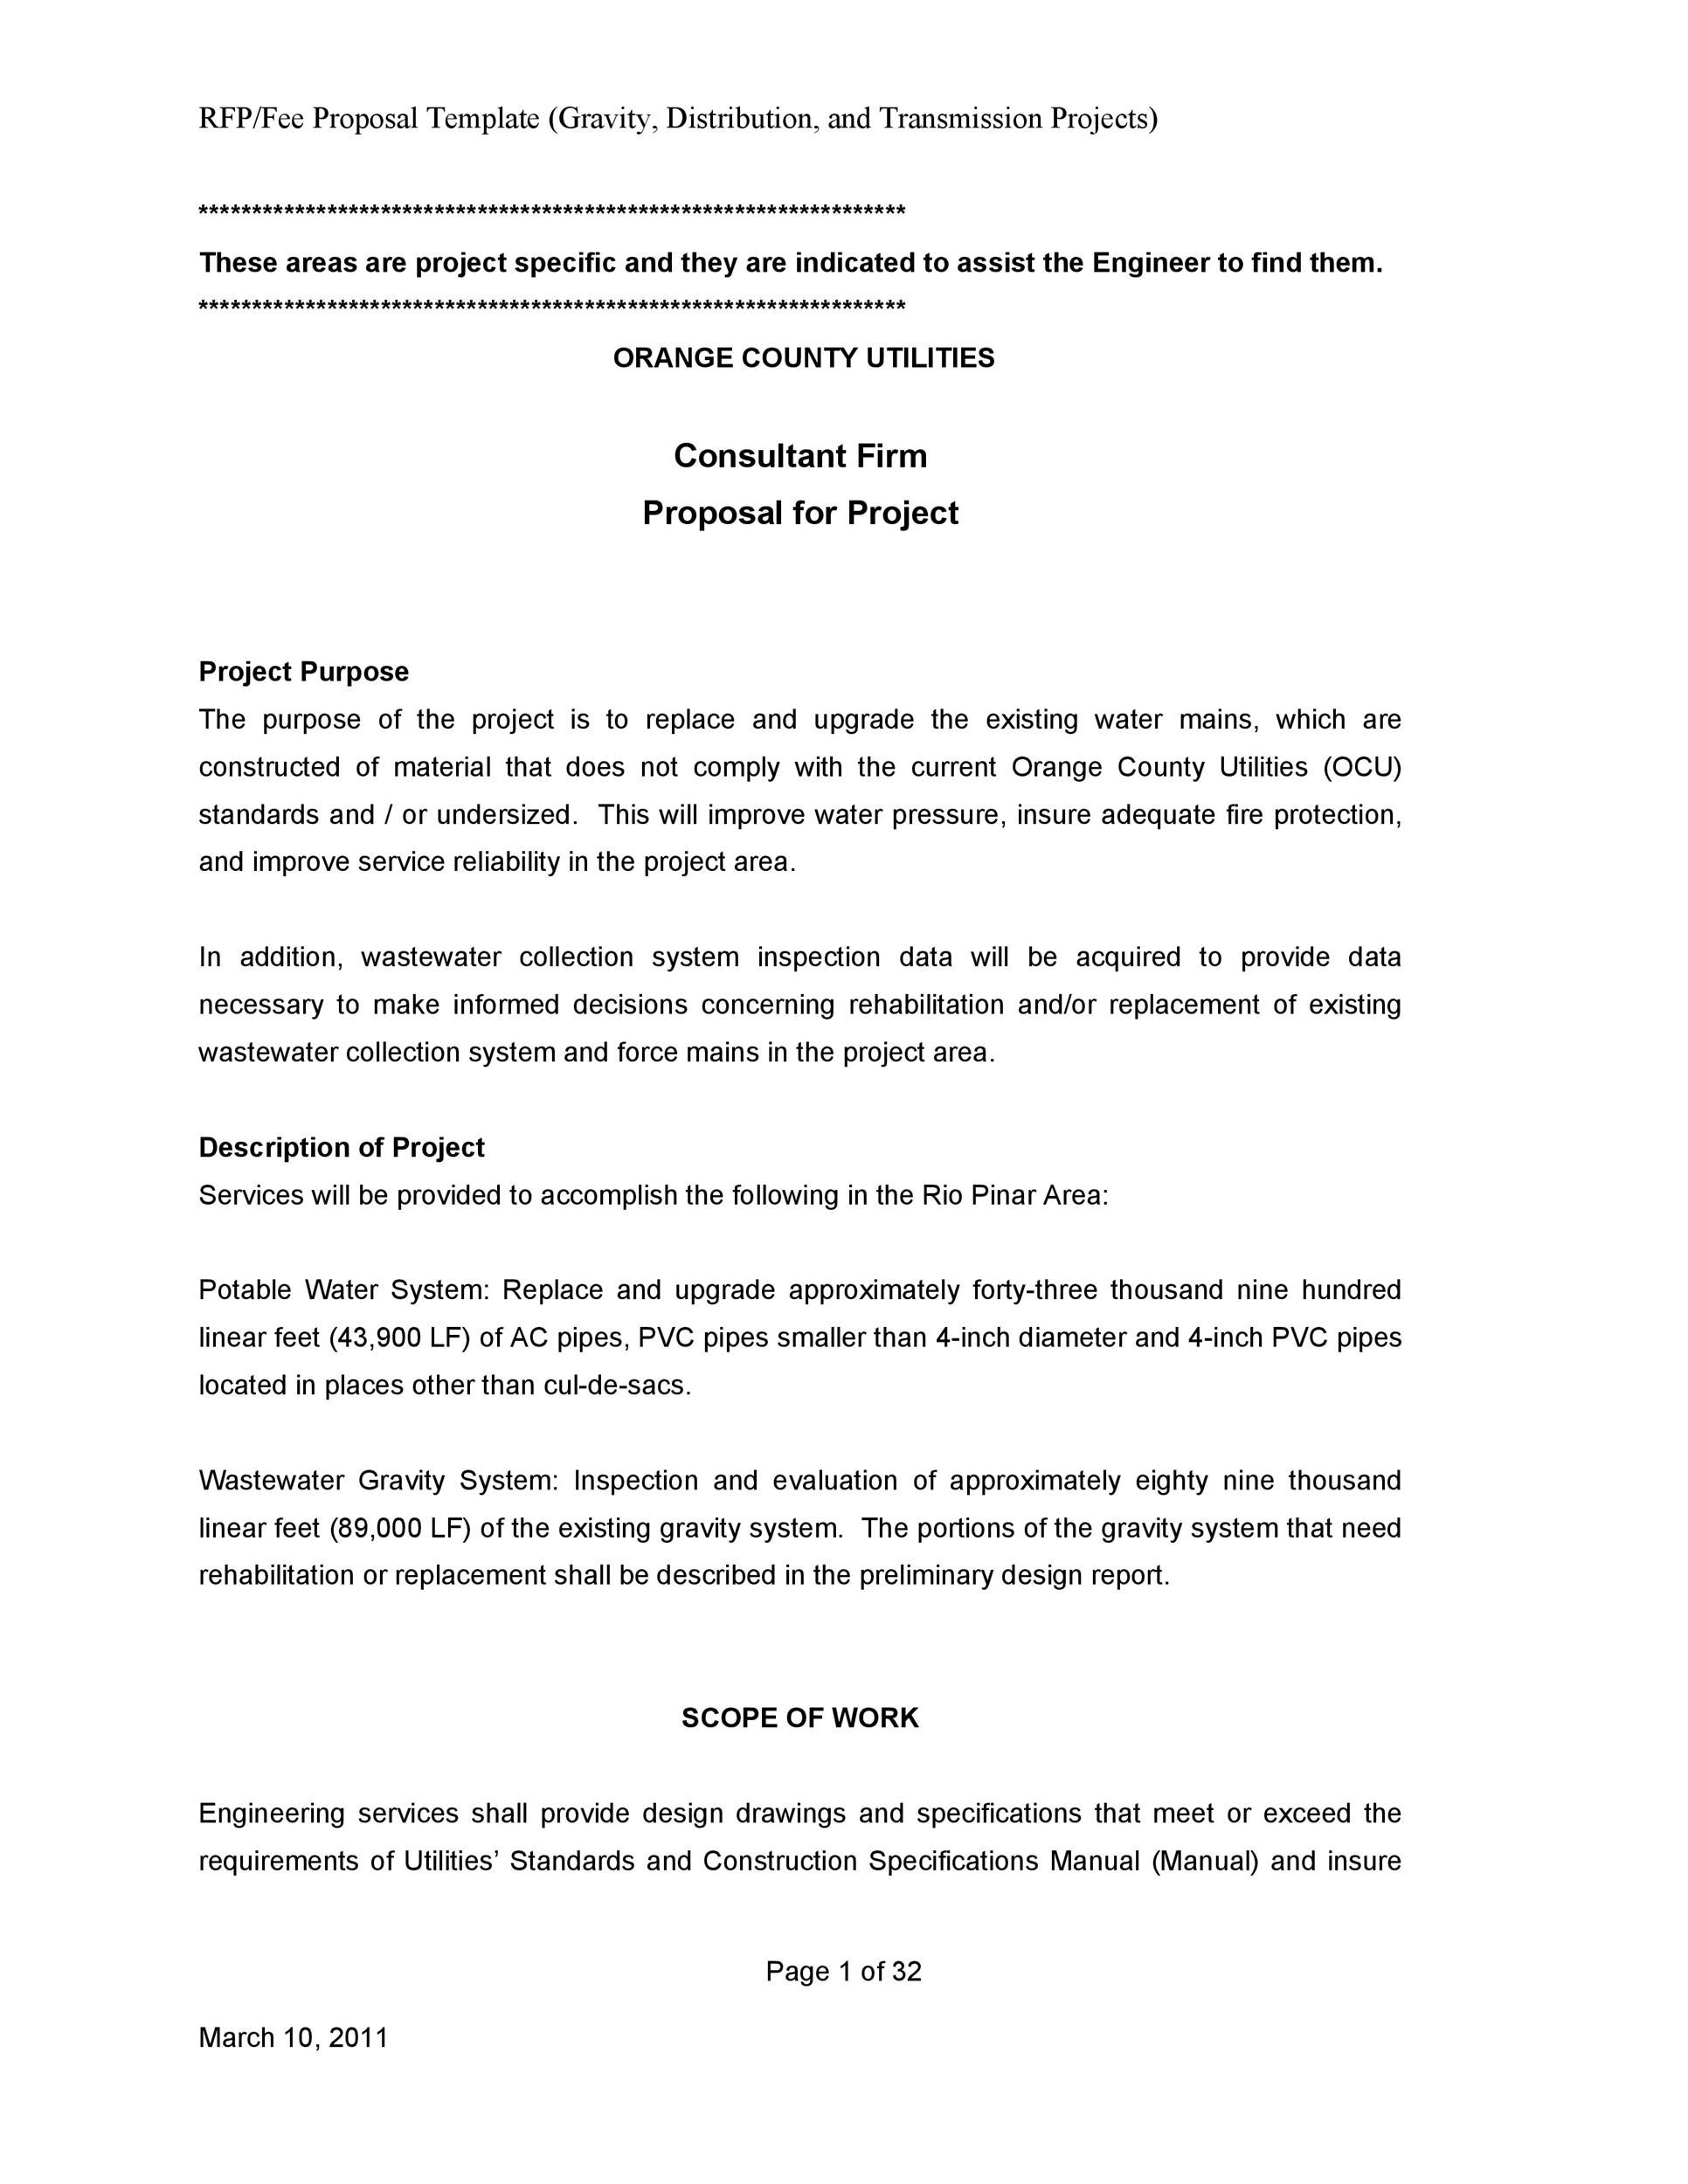 Free Consulting Proposal Template 28